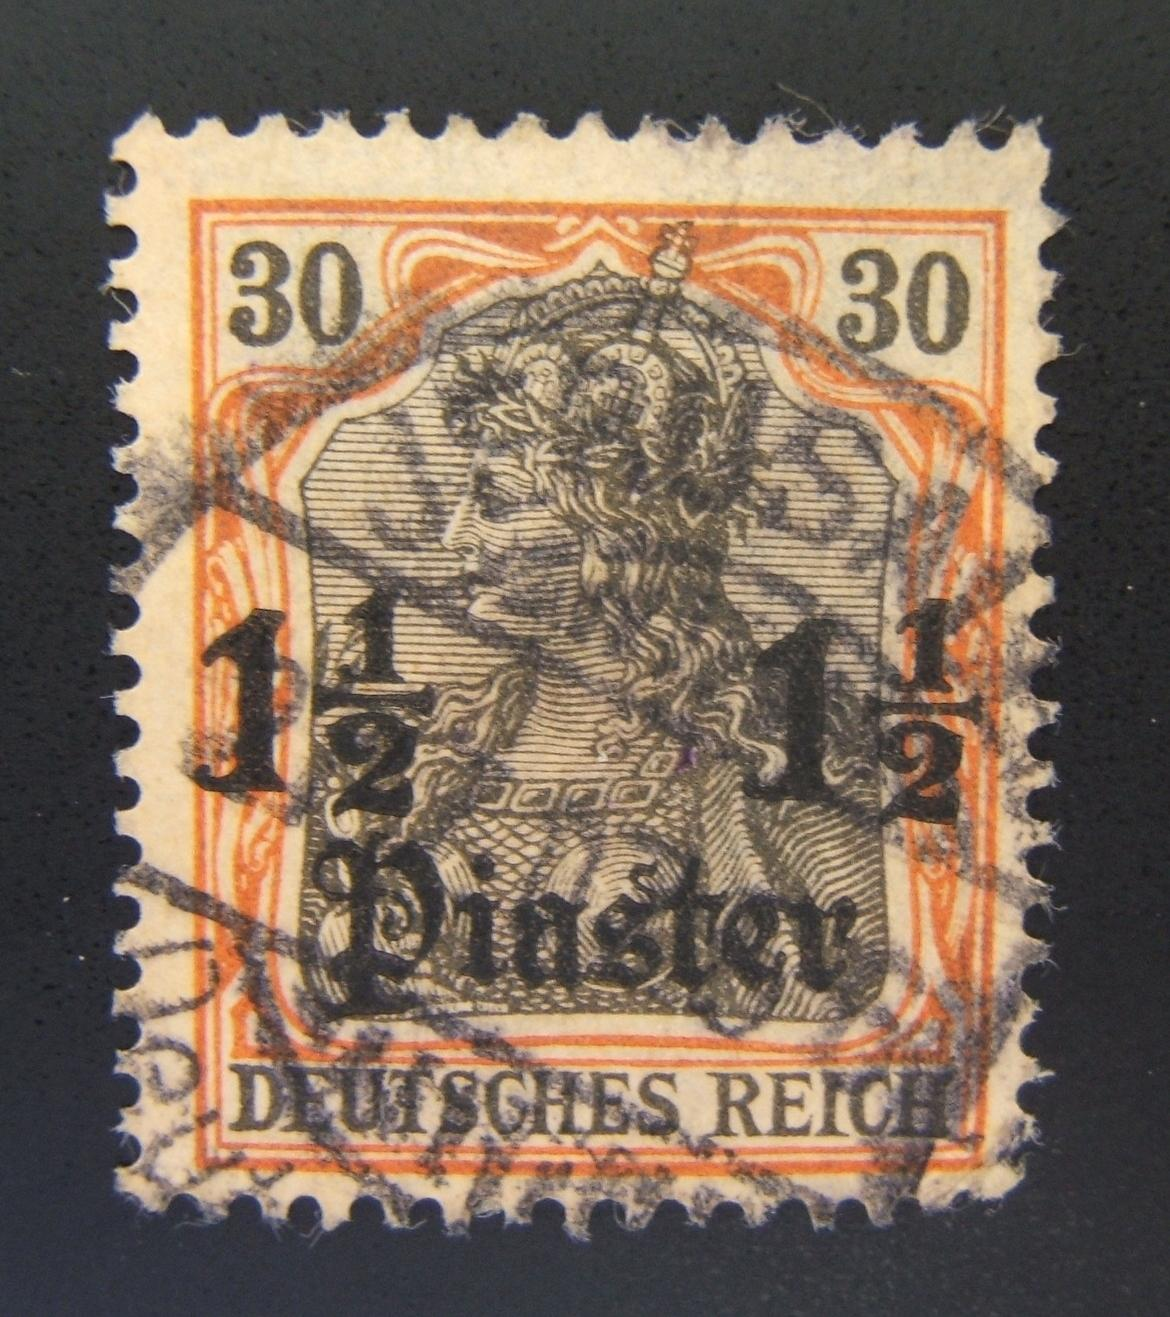 German Holyland Post: 1905 Deutsches Reich 1 1/2Pia on 30pf w/o wmk; Jer. pmk G-2 Ba 405